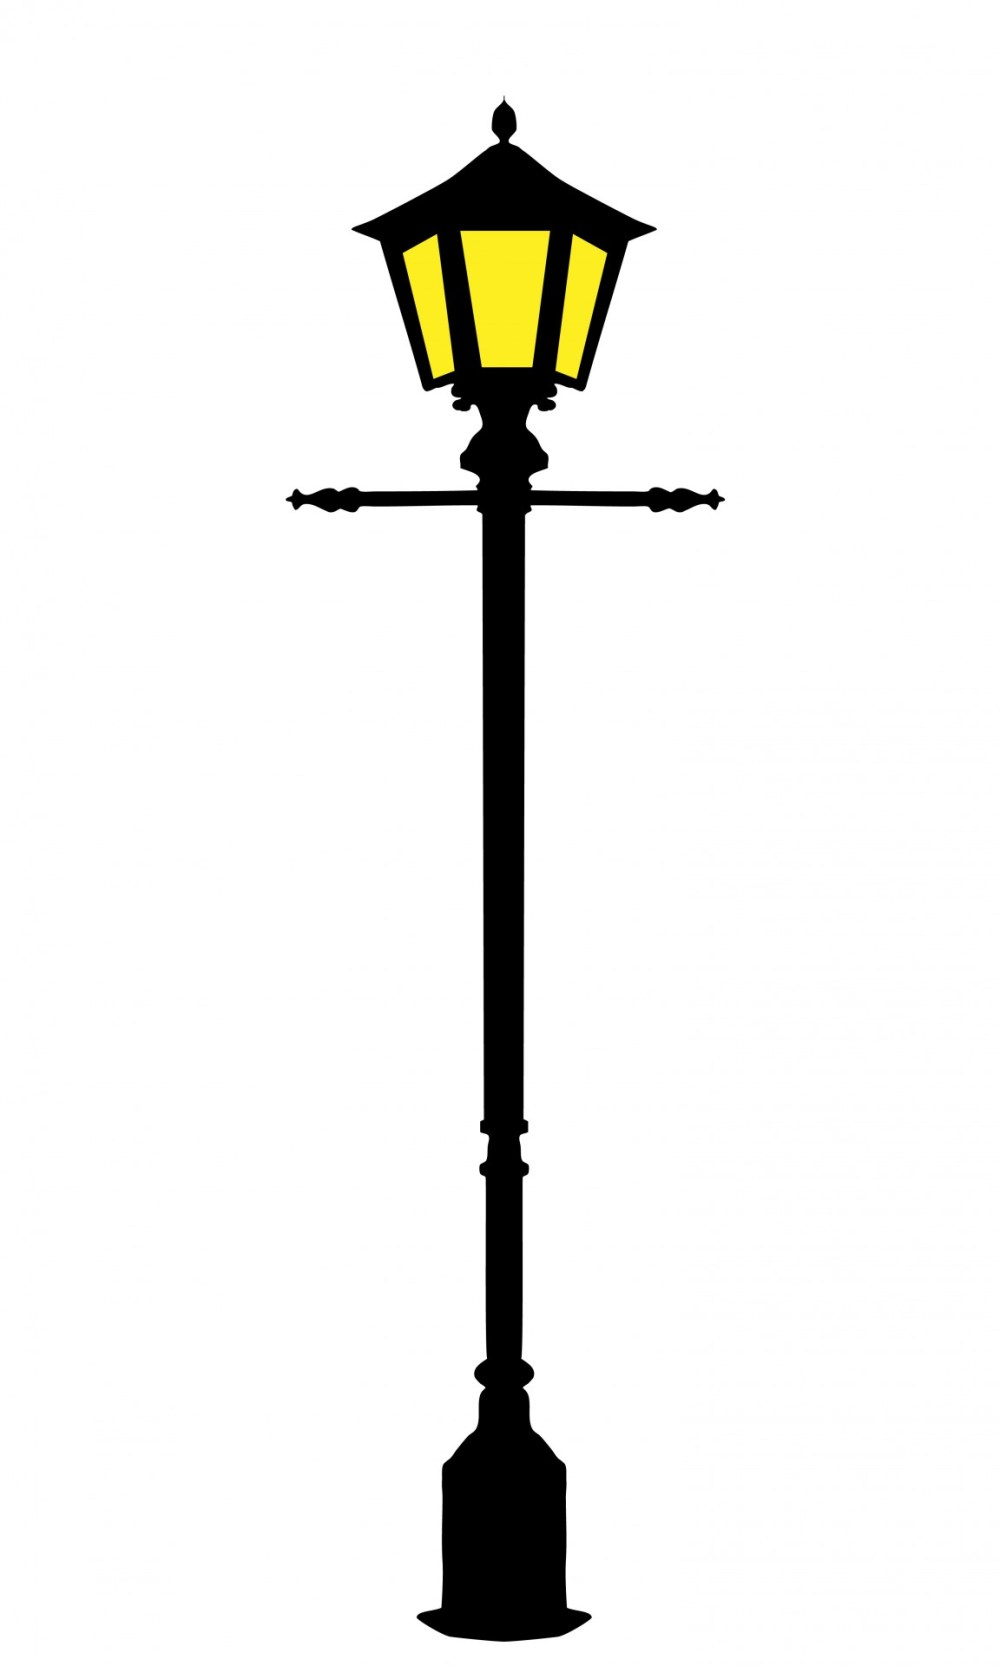 medium resolution of 1152x1920 vintage street lighting clipart free stock photo